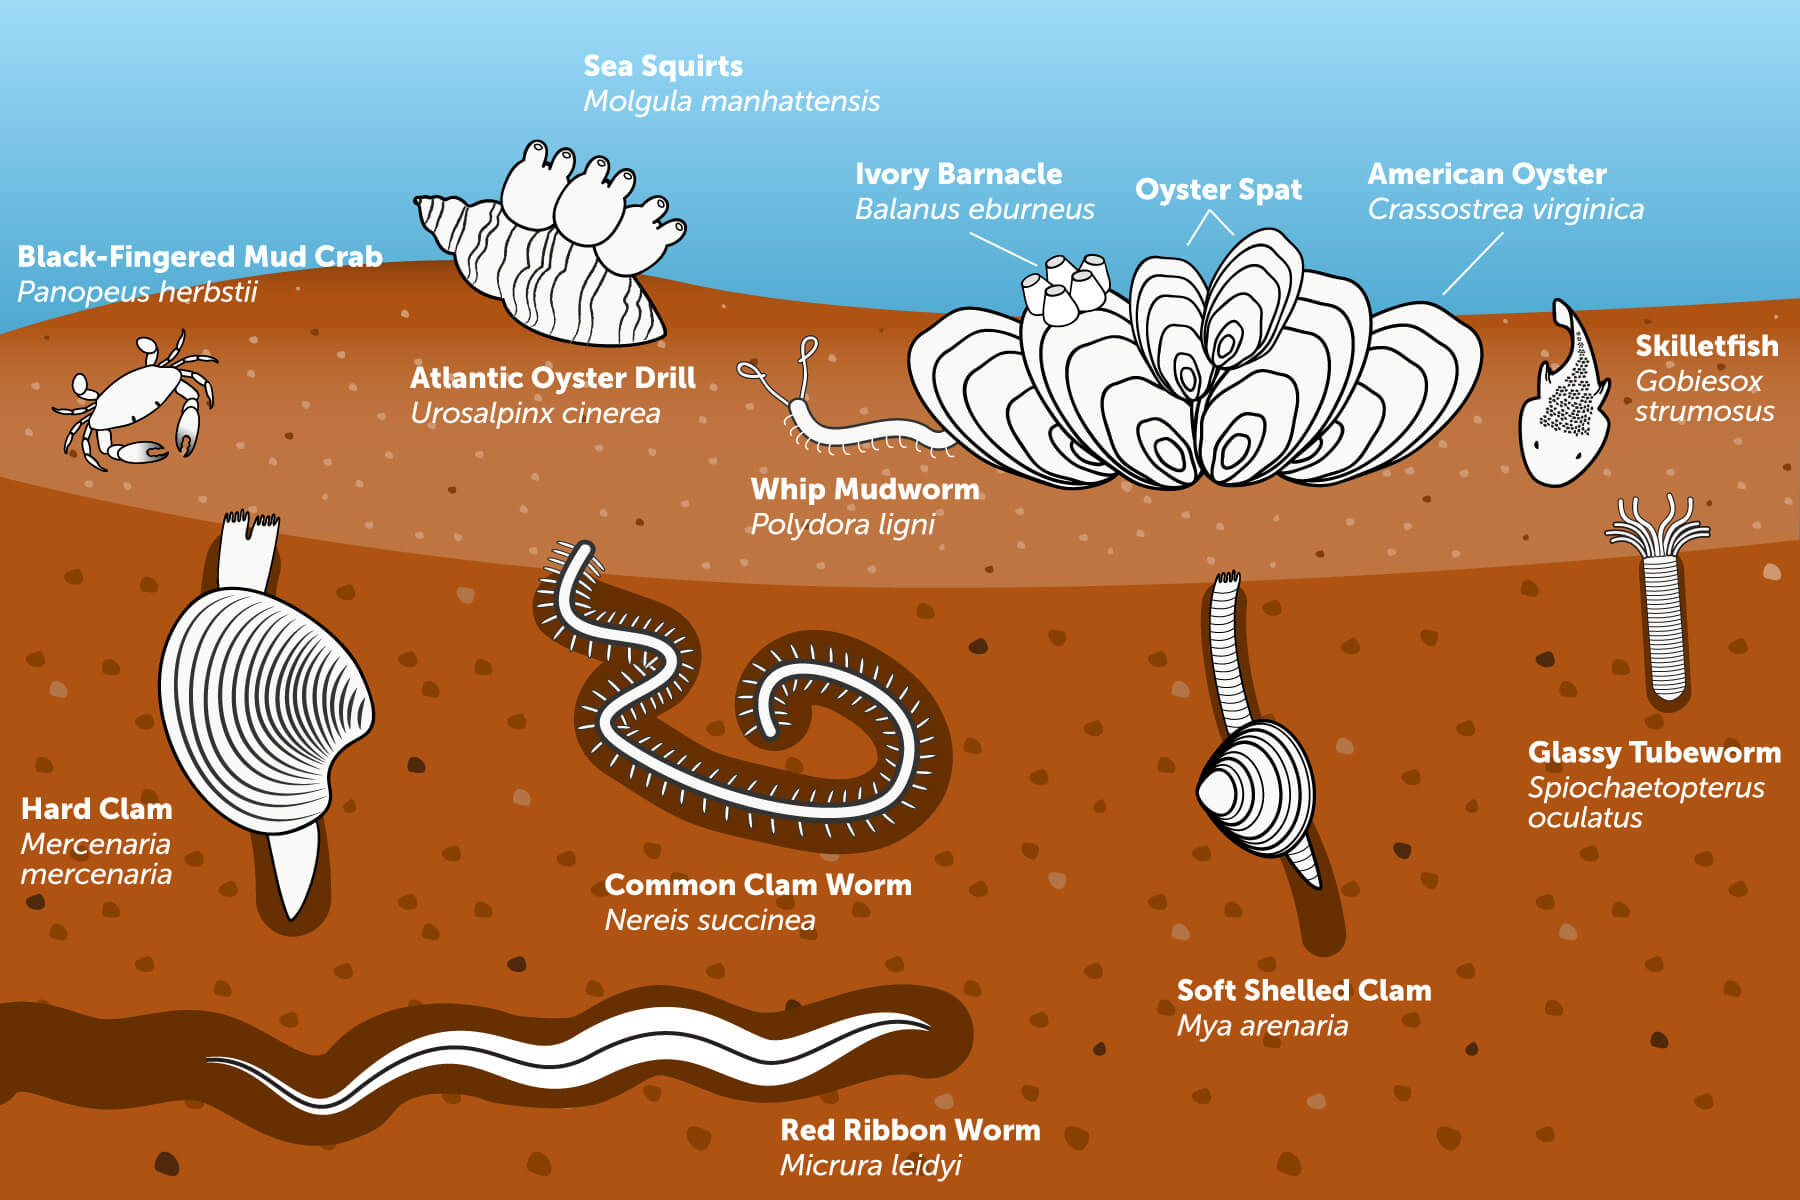 Illustration of a typical healthy benthic community